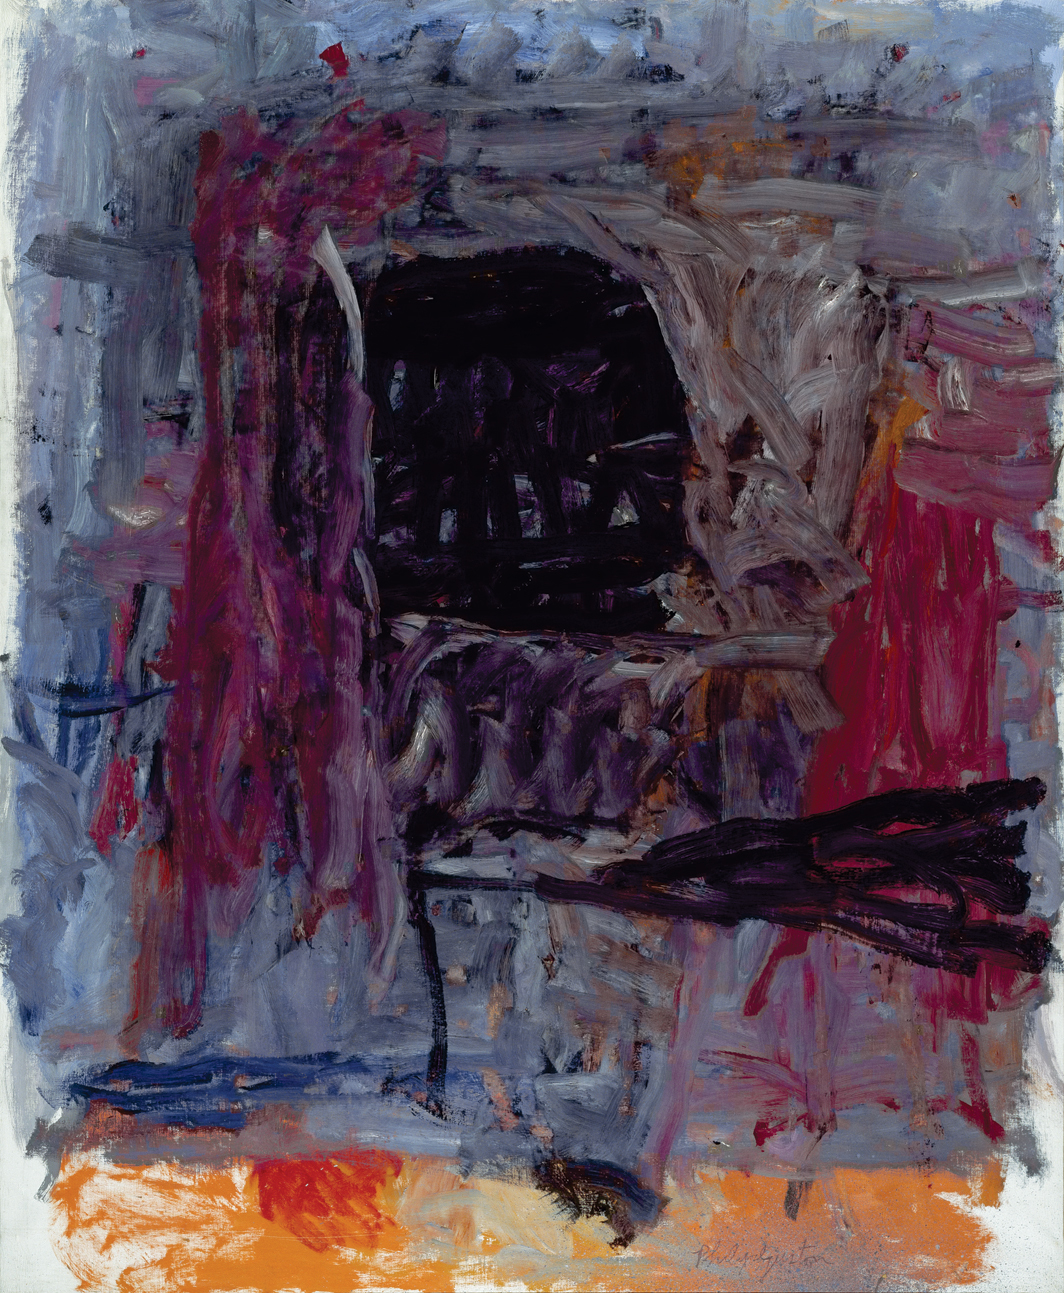 "Philip Guston, Painter II, 1959–60, oil on canvas, 69 × 57"". © The Estate of Philip Guston."